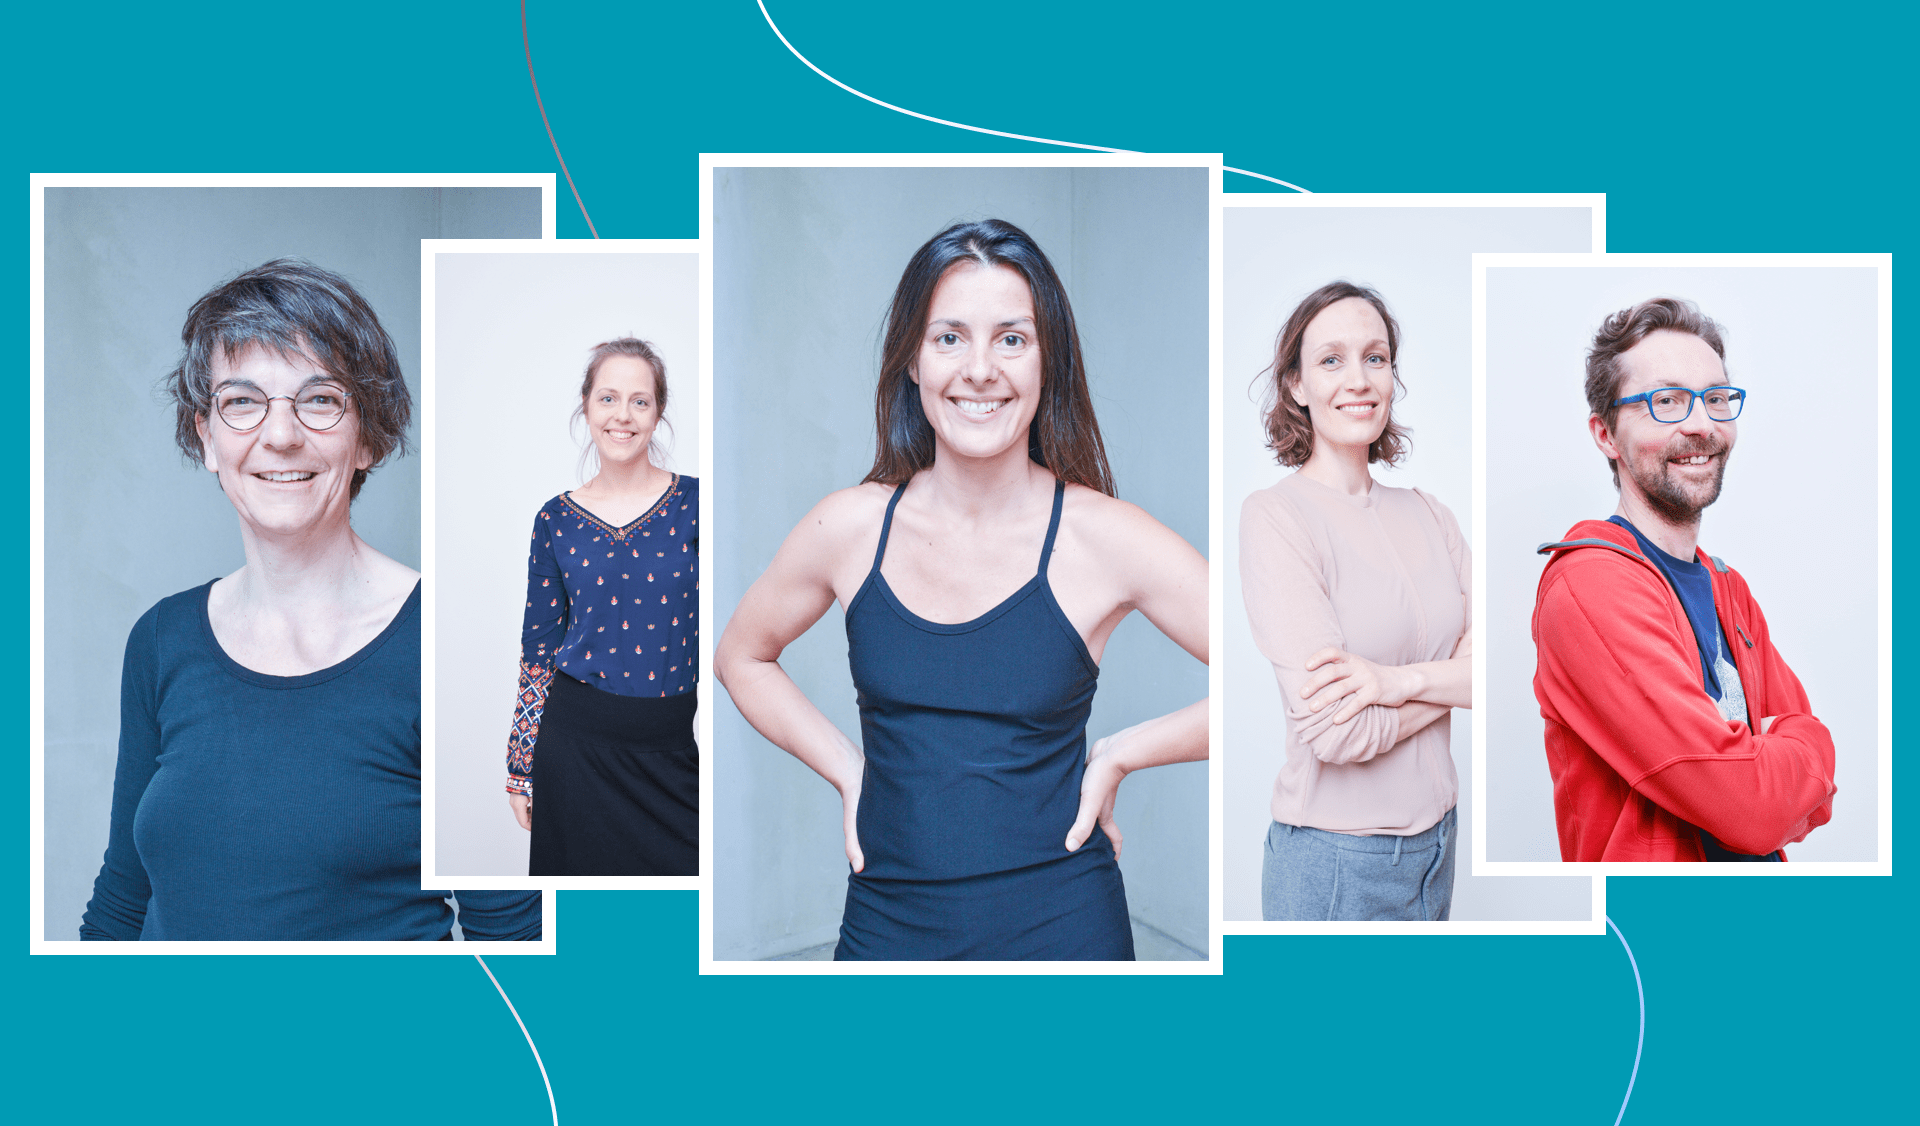 Maintaining brand consistency through photography for Pantarei Approach - Pantarei approach is a somatic bodywork therapy training institute based in Saint-Petersburg and we provide on-brand portraits for their instructors since 2016.